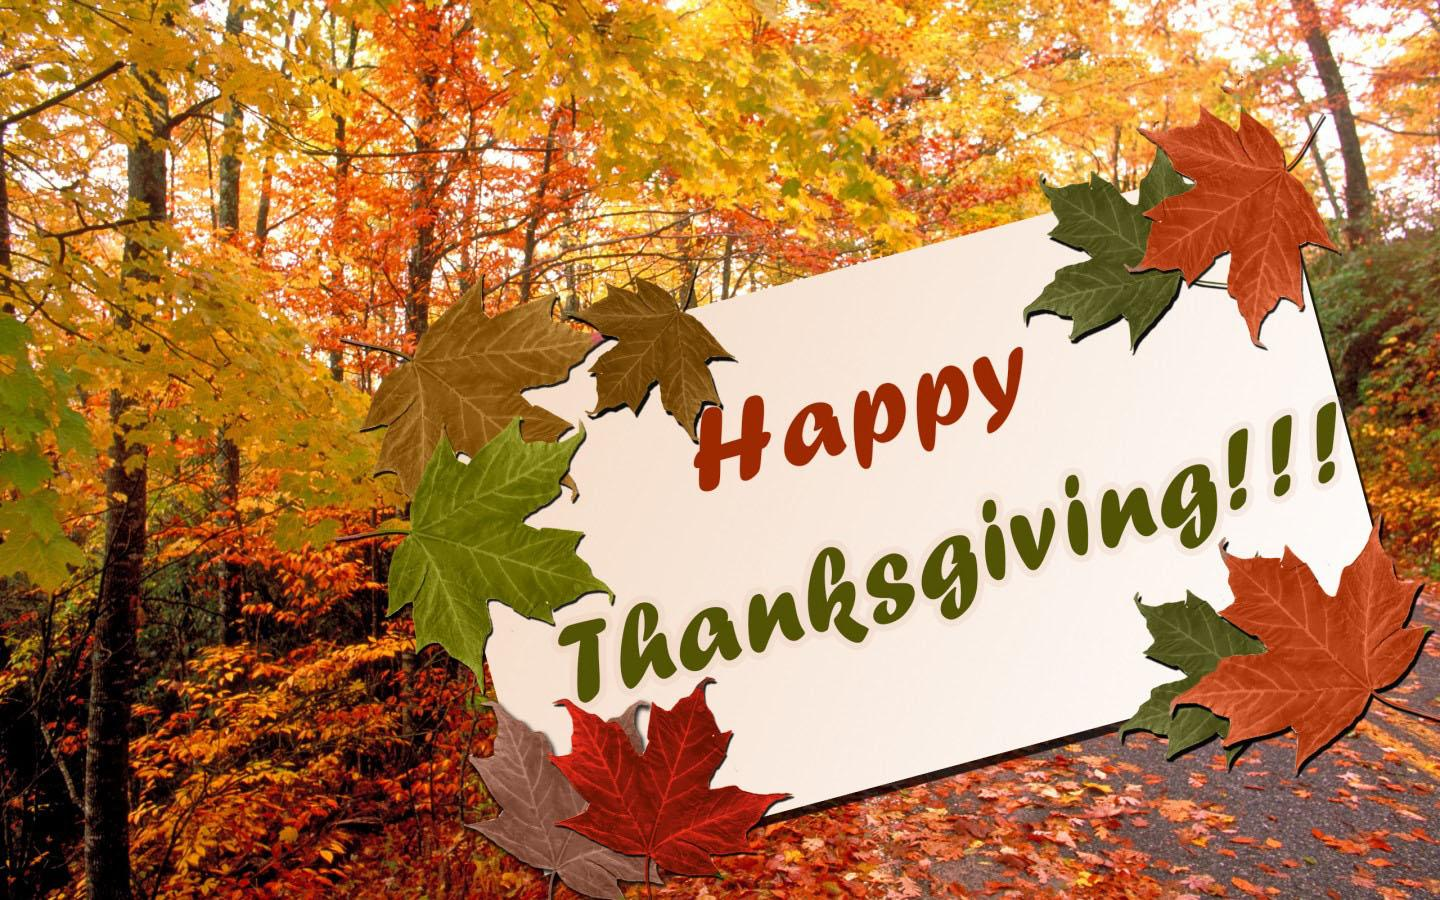 Thanksgiving Wallpaper - Android Apps on Google Play